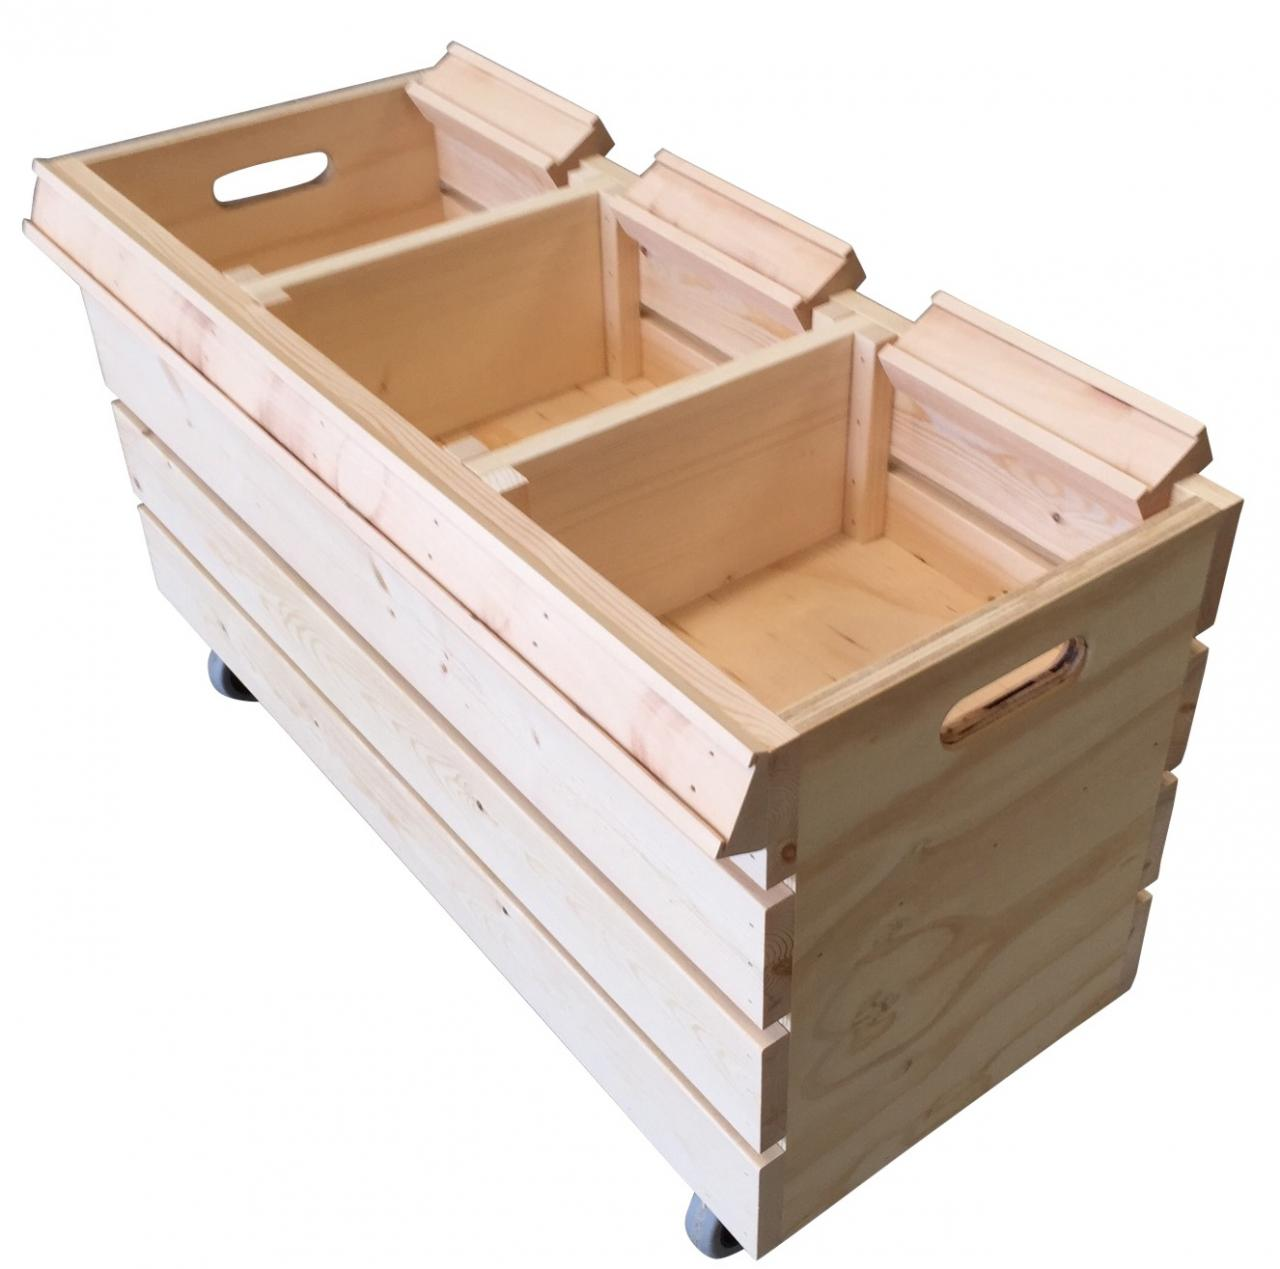 Fruit Bins For Sale Rustic Wood Retail Store Product Display Fixtures